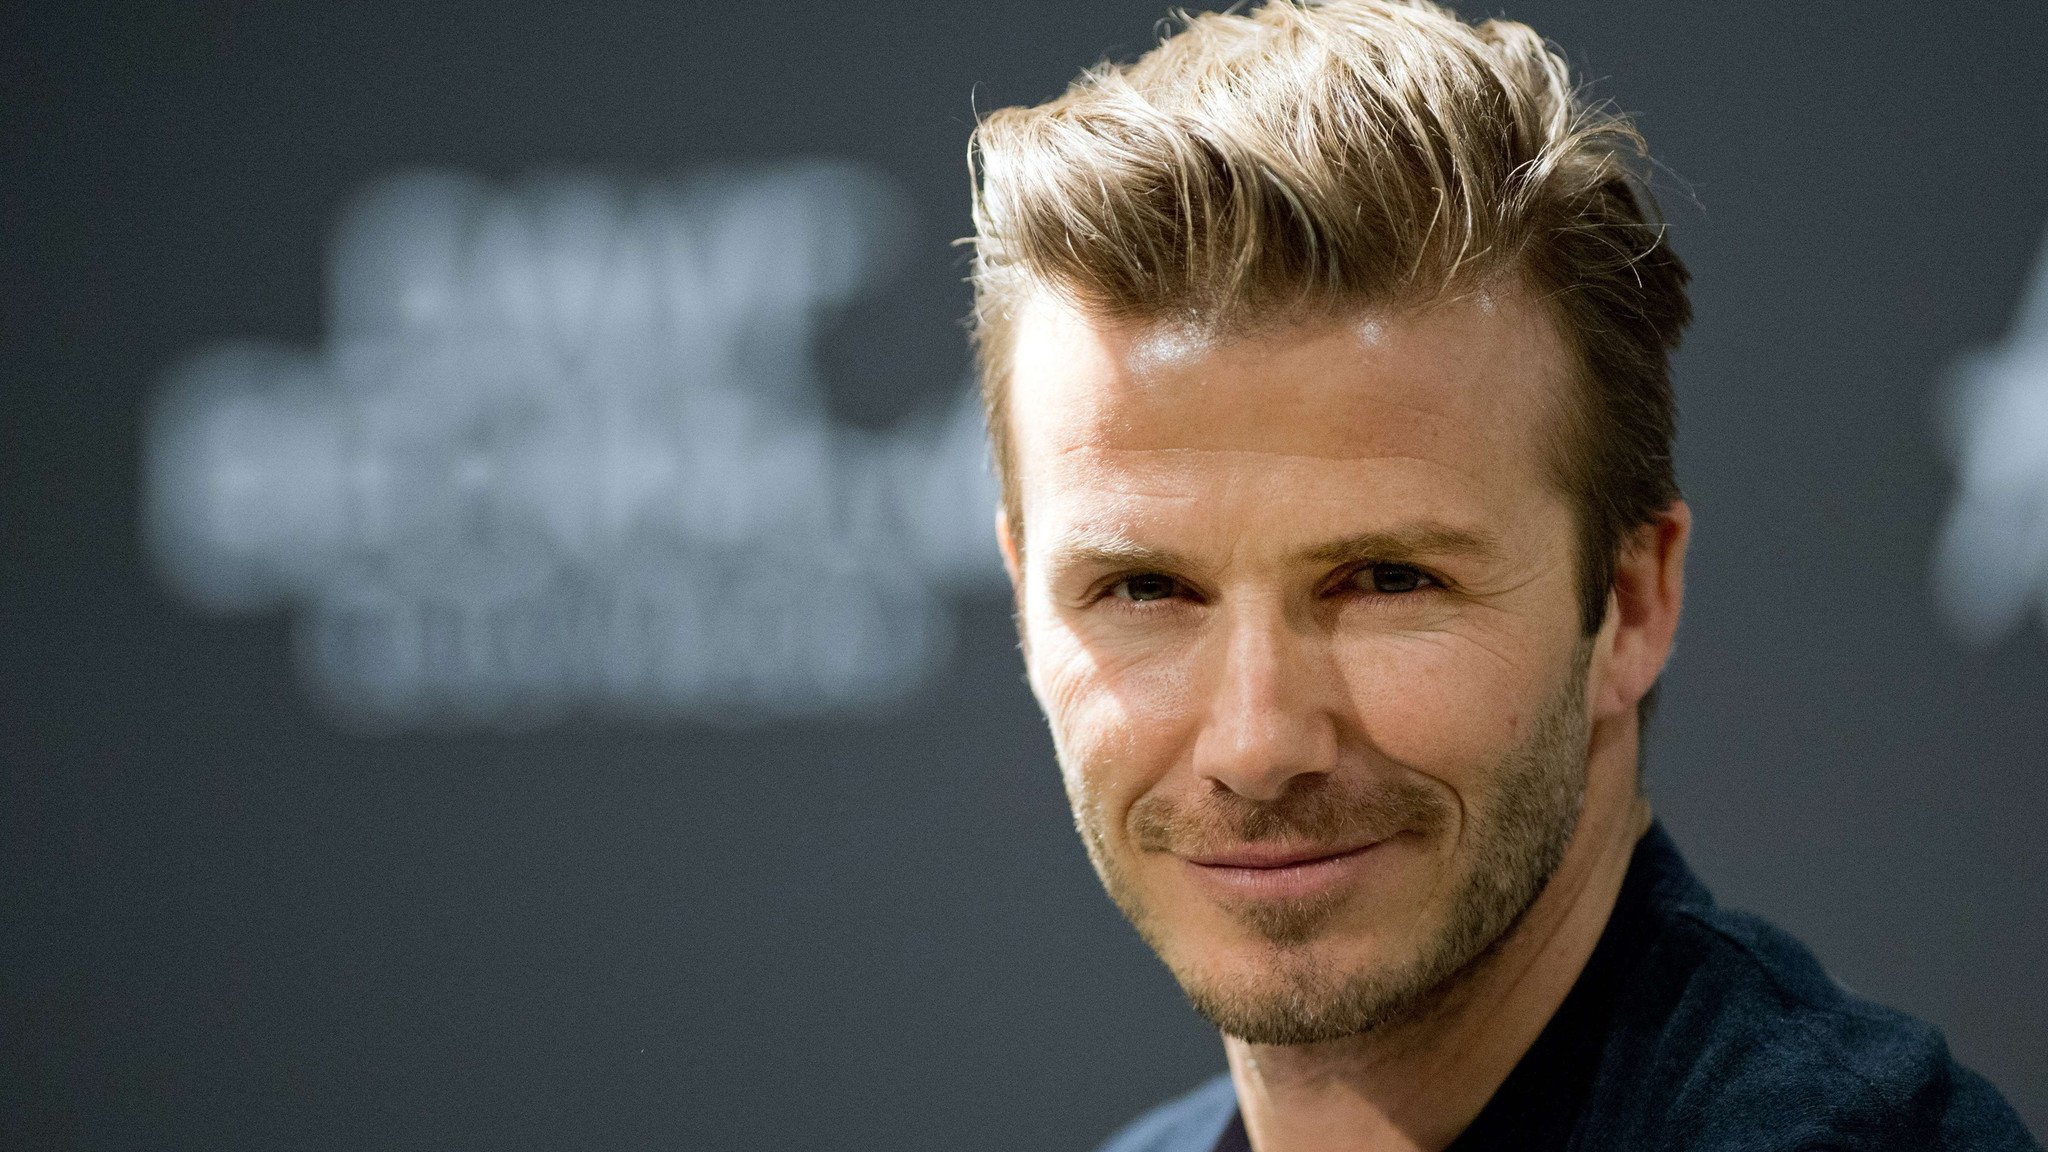 Heres How David Beckham Became The Reason Why An Entire - Beckham hairstyle ferguson